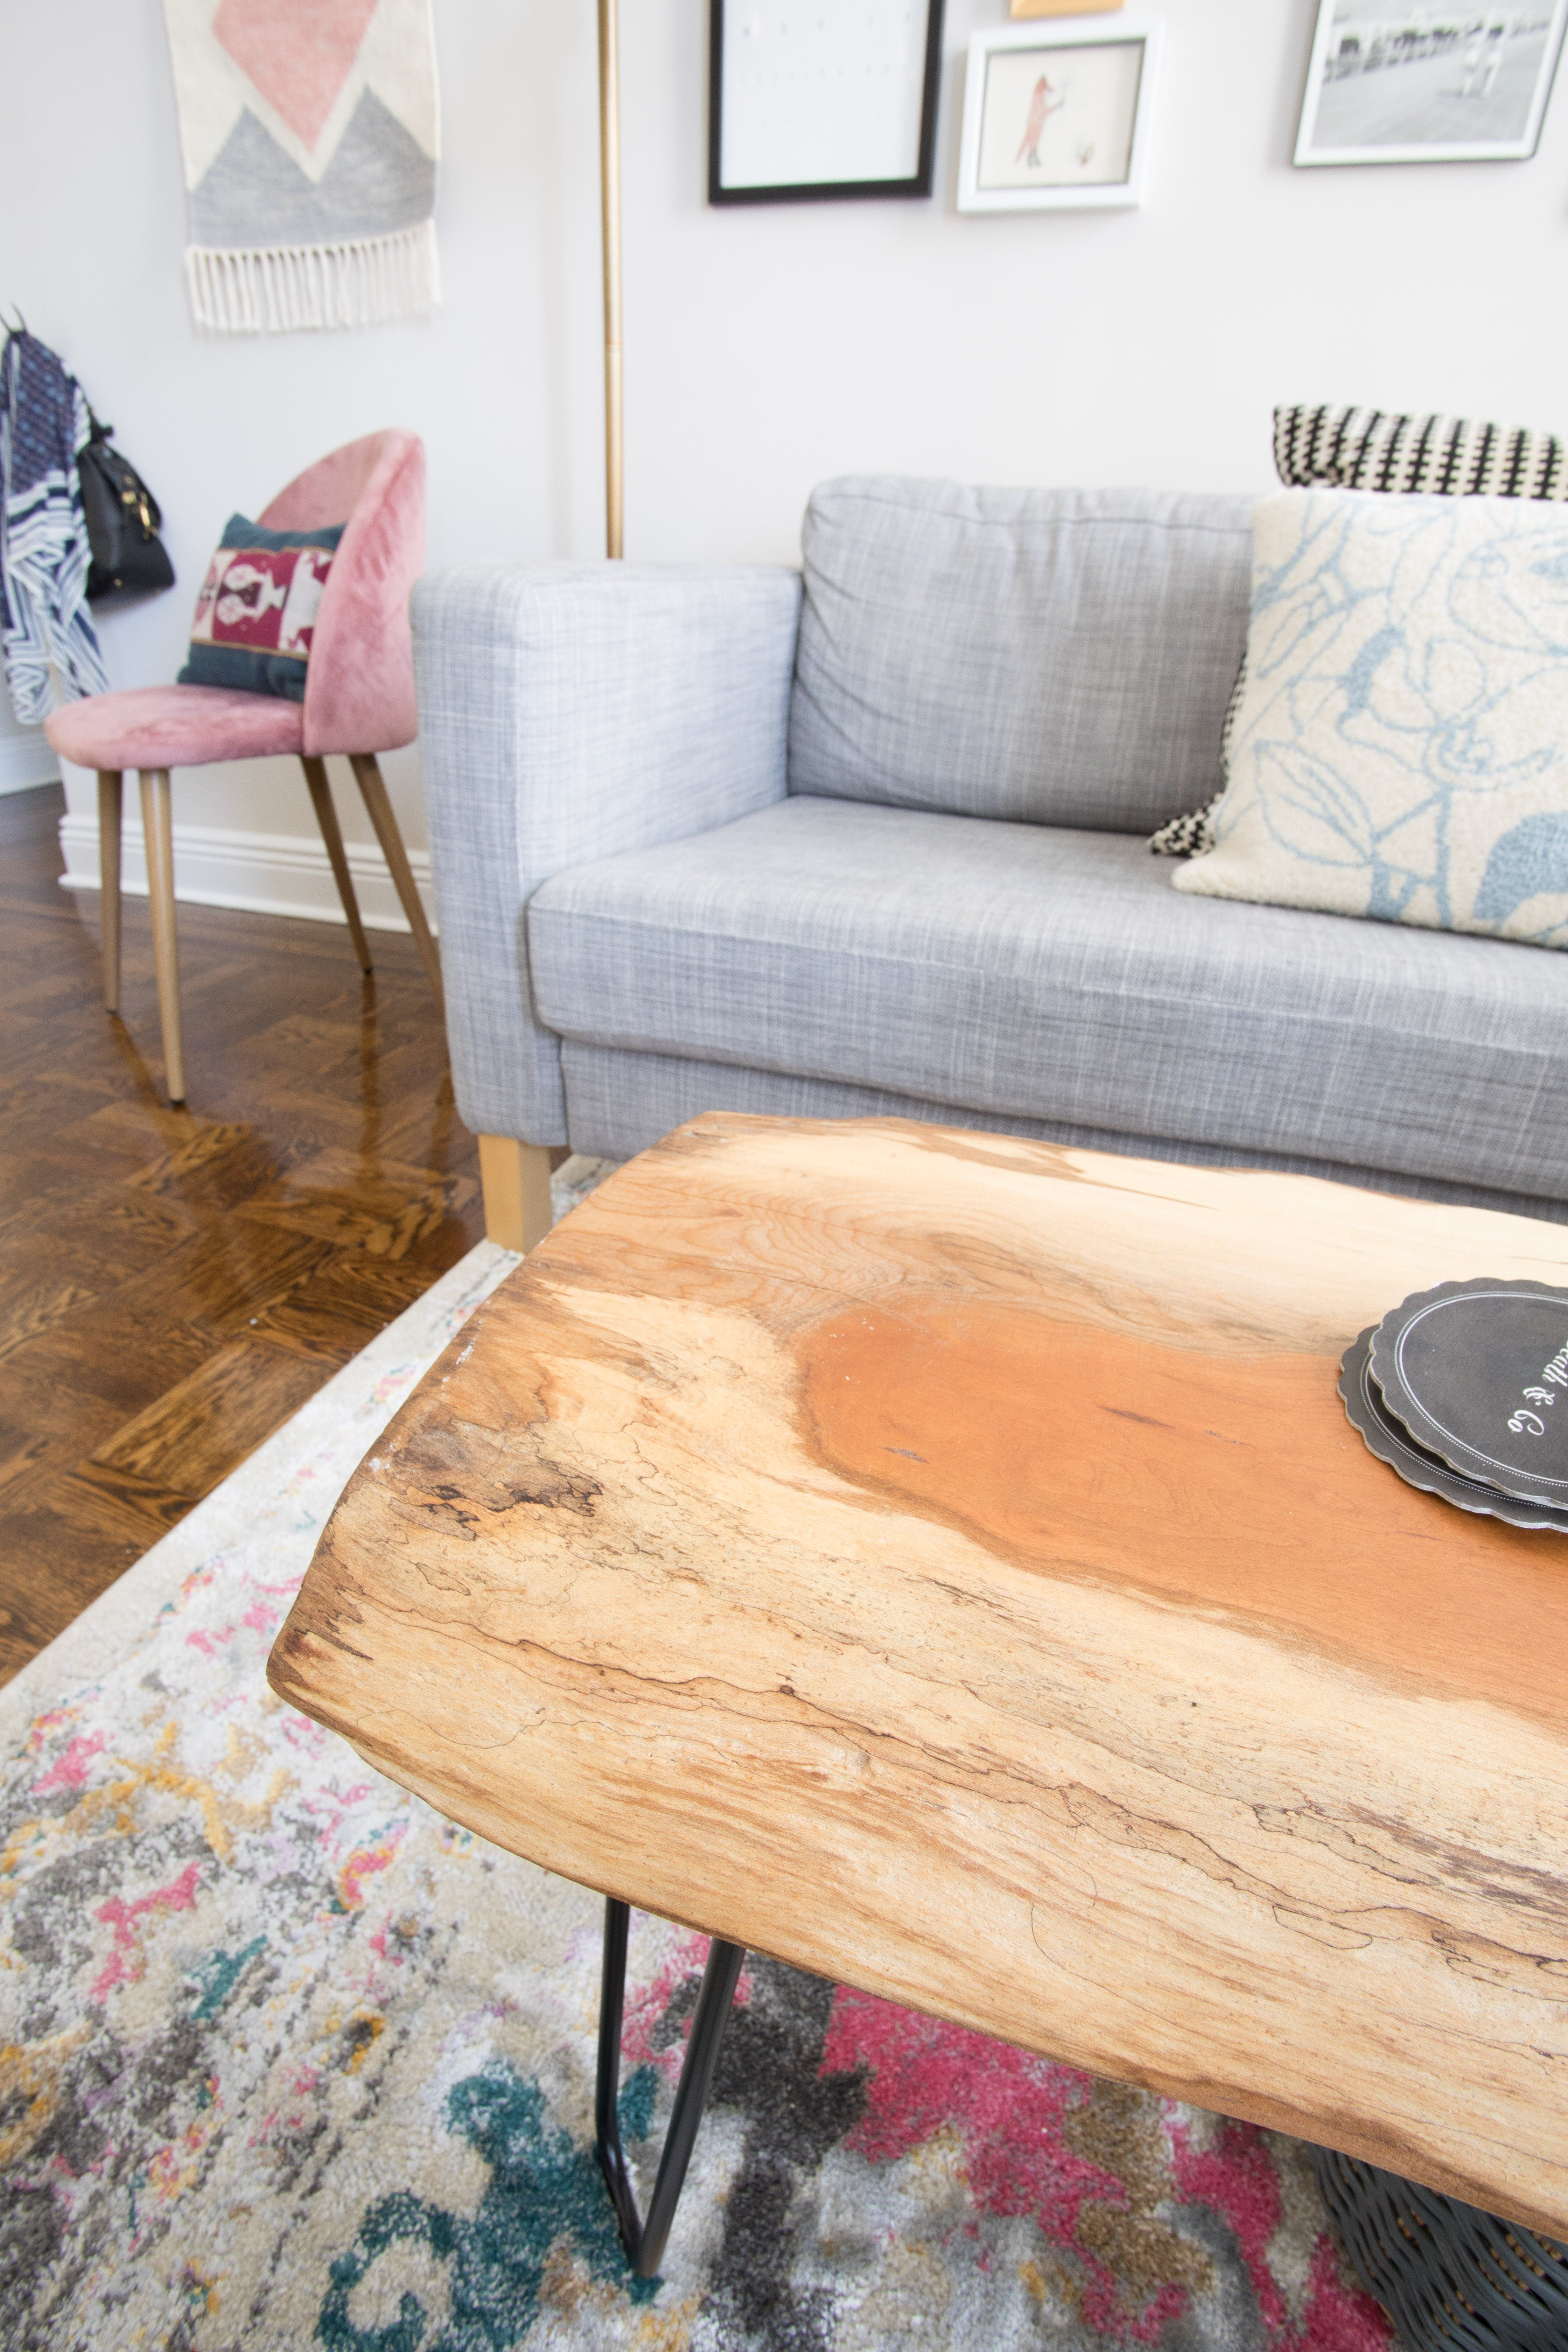 Proudest Diy My Coffee Table I Found The Live Edge Wood